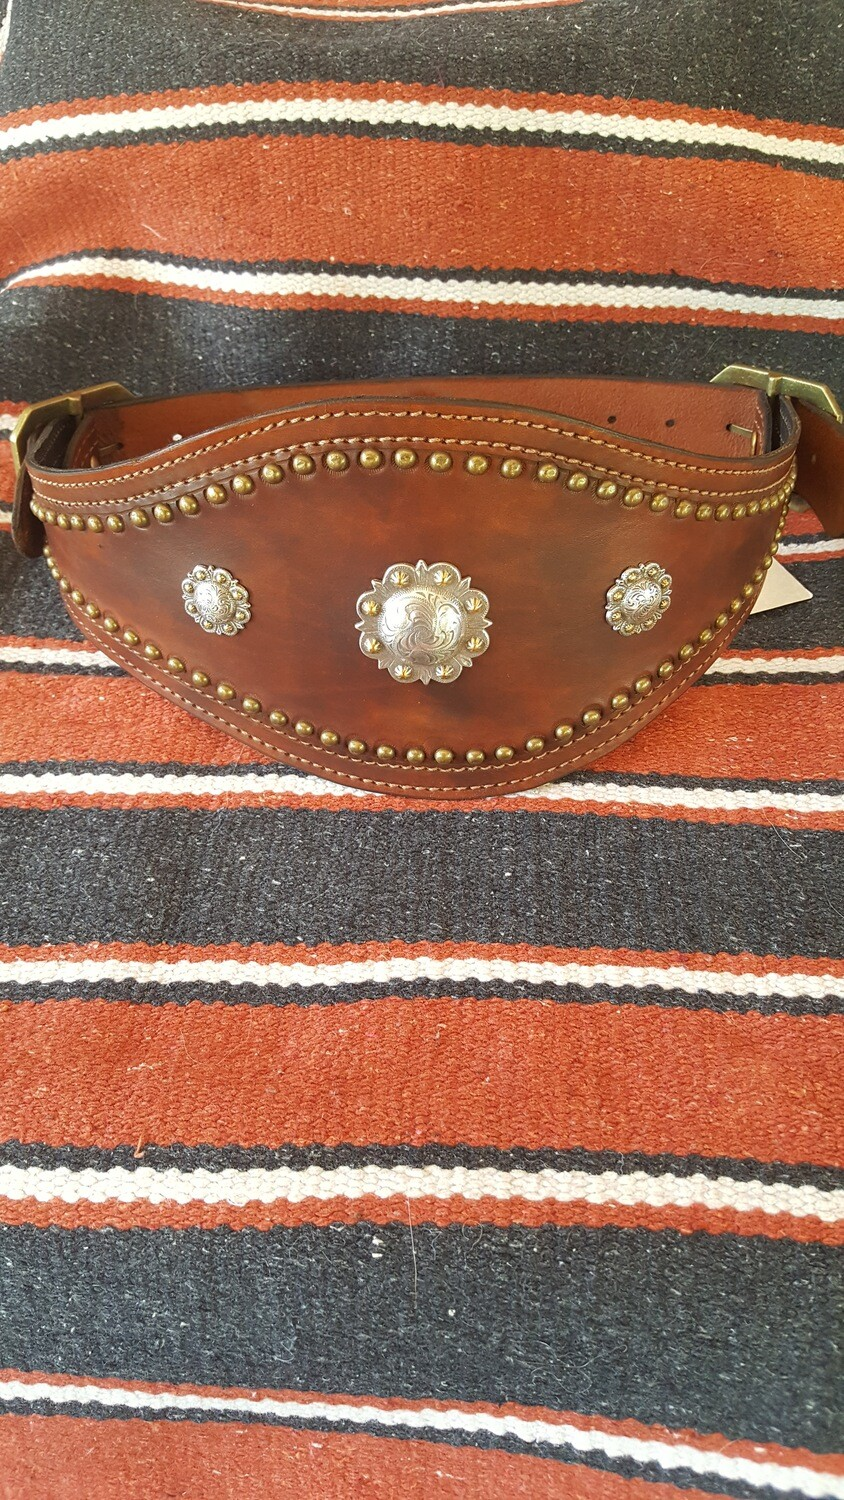 Ladies Brown Leather Bronco Belt with Conchos and Spots